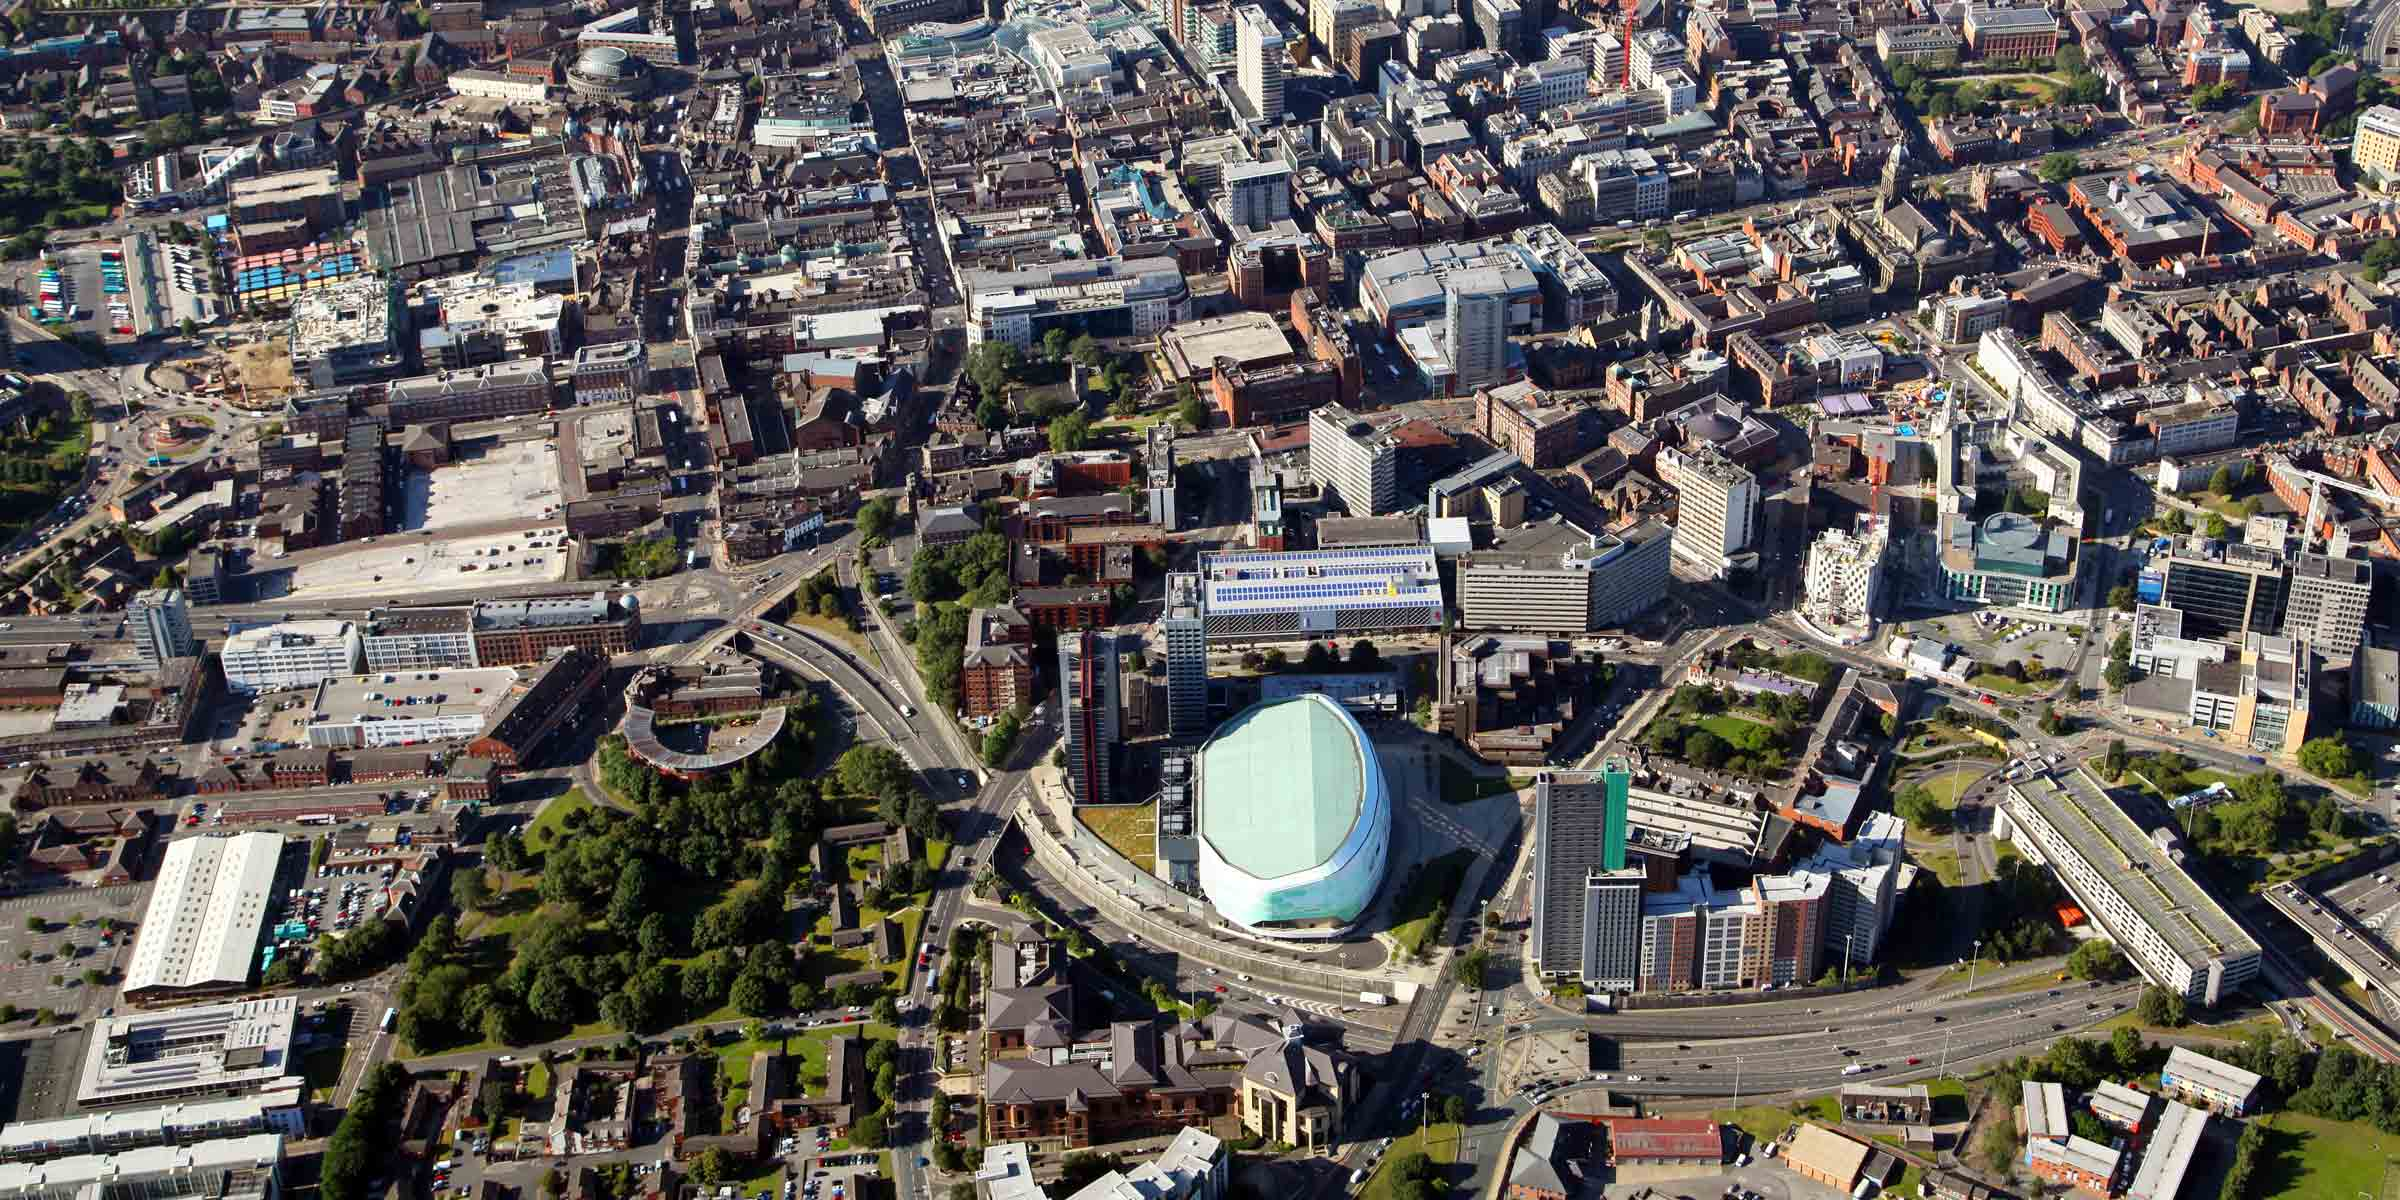 Commercial Property in Leeds